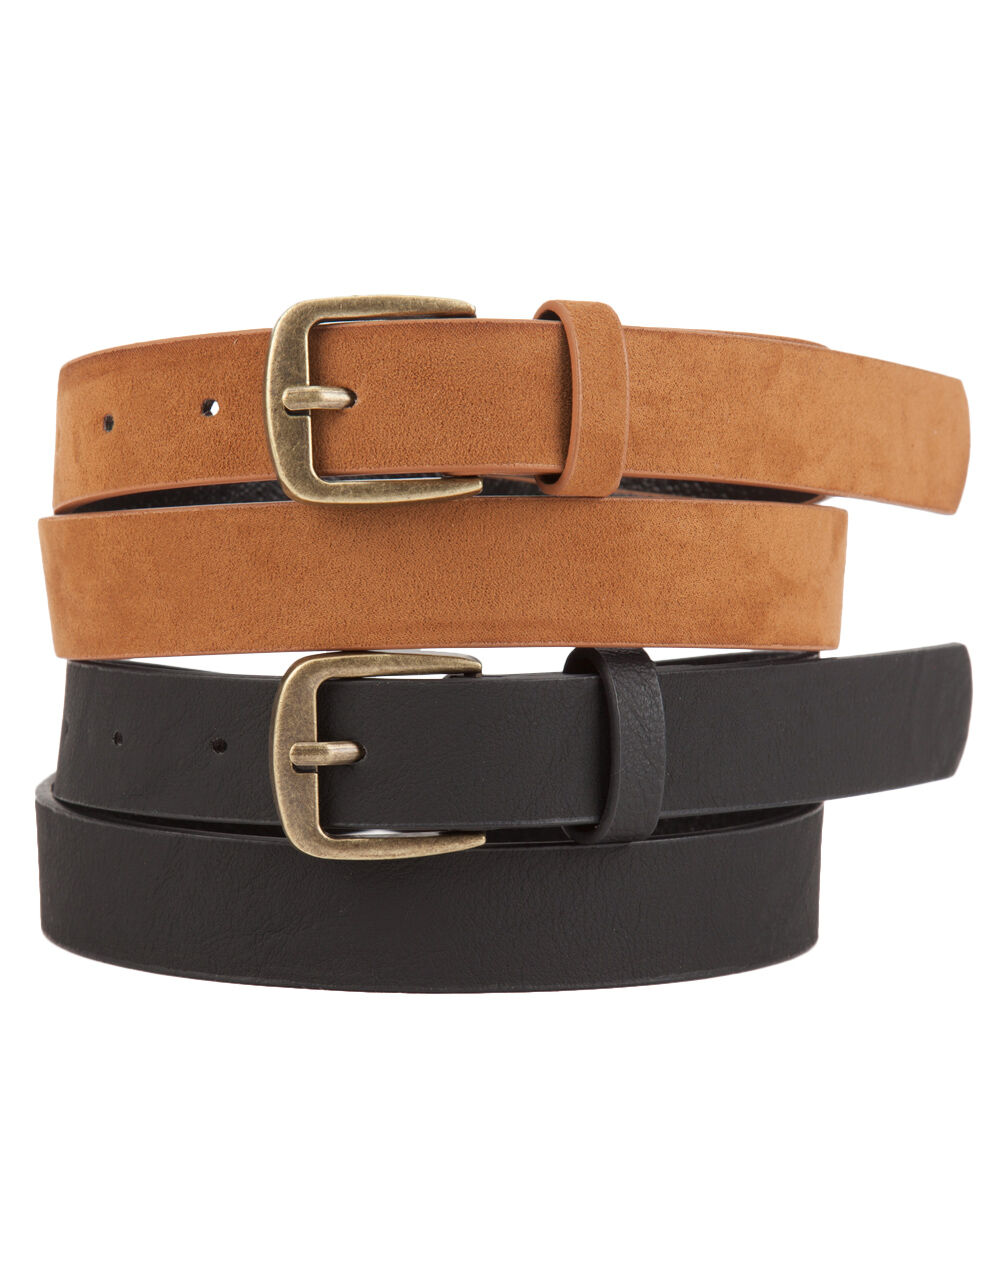 Image of 2 PACK FAUX LEATHER/SUEDE BELTS